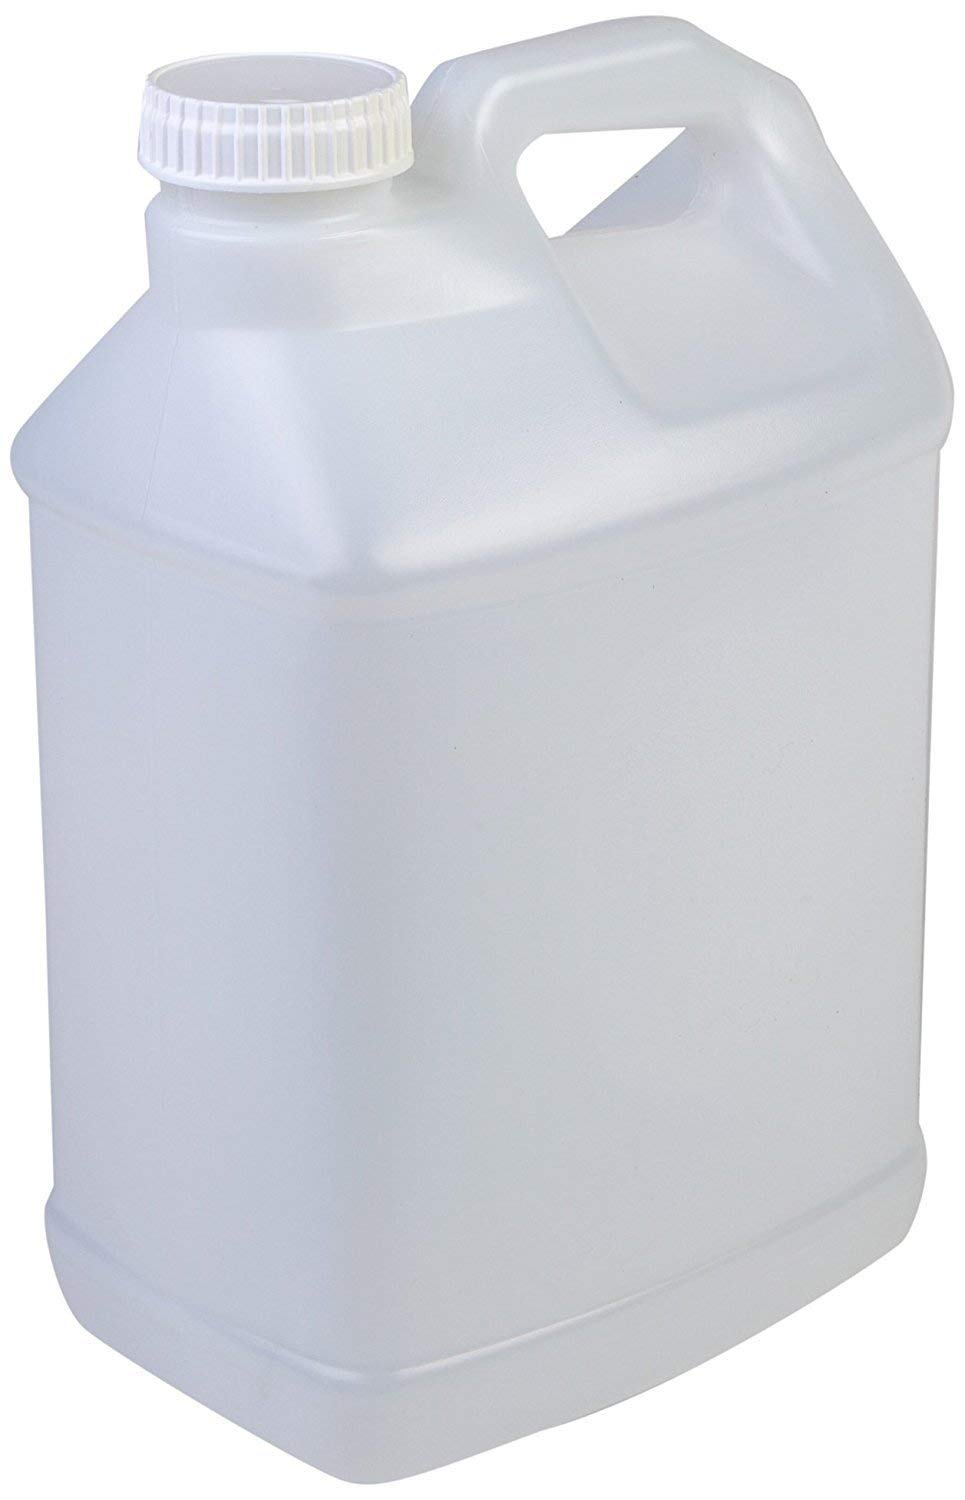 Hudson Exchange 2.5 Gallon Hedpak Container with Cap, HDPE, Natural, 4 Pack